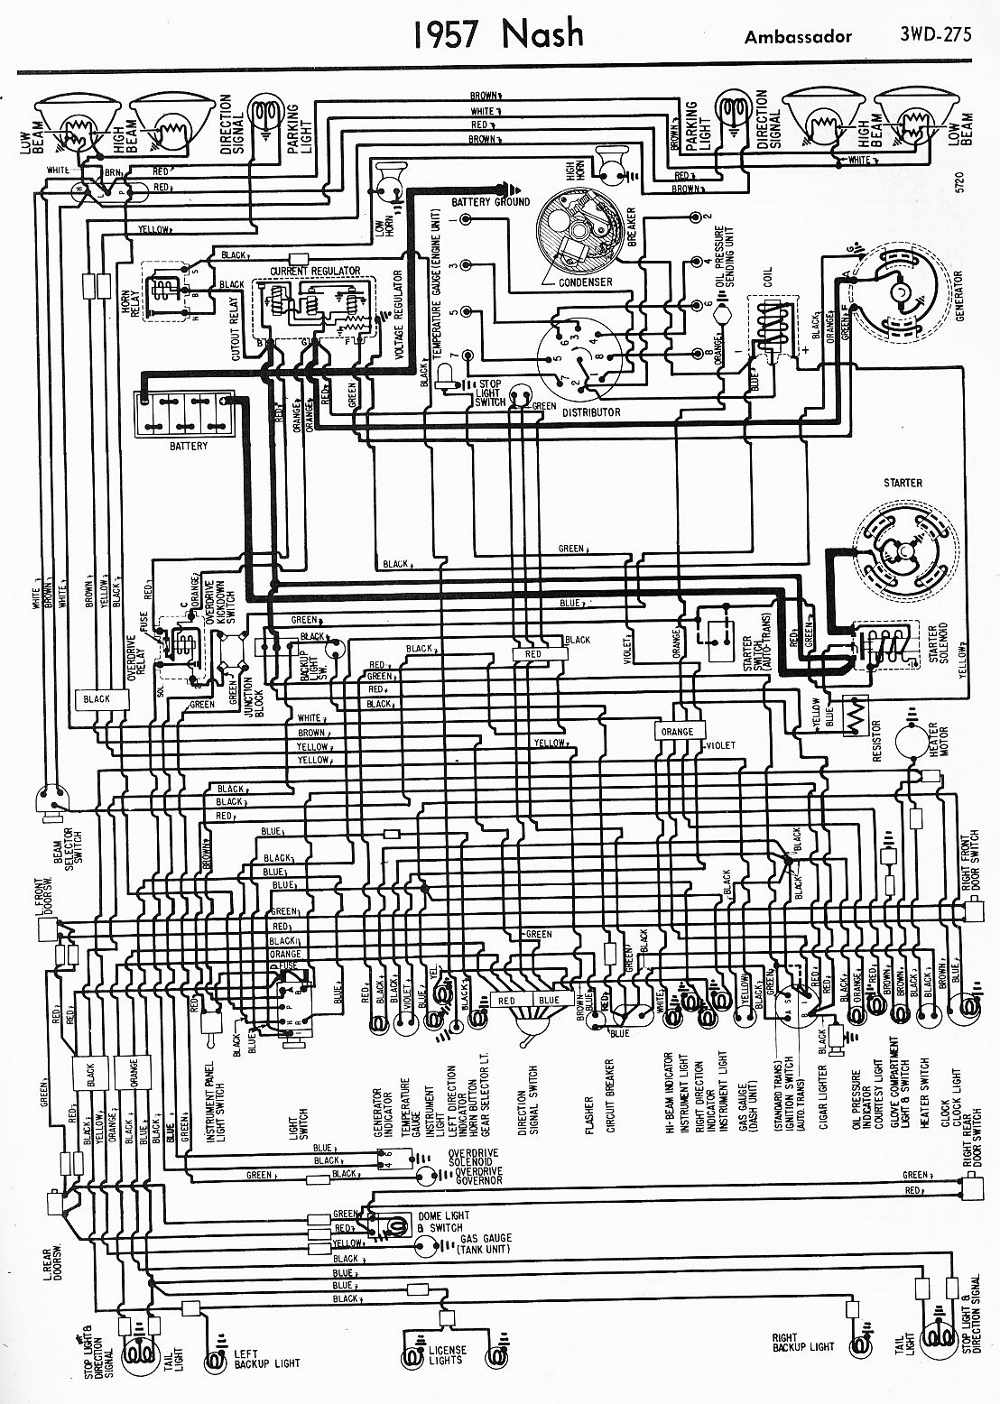 Nash  car manuals, wiring diagrams PDF & fault codes